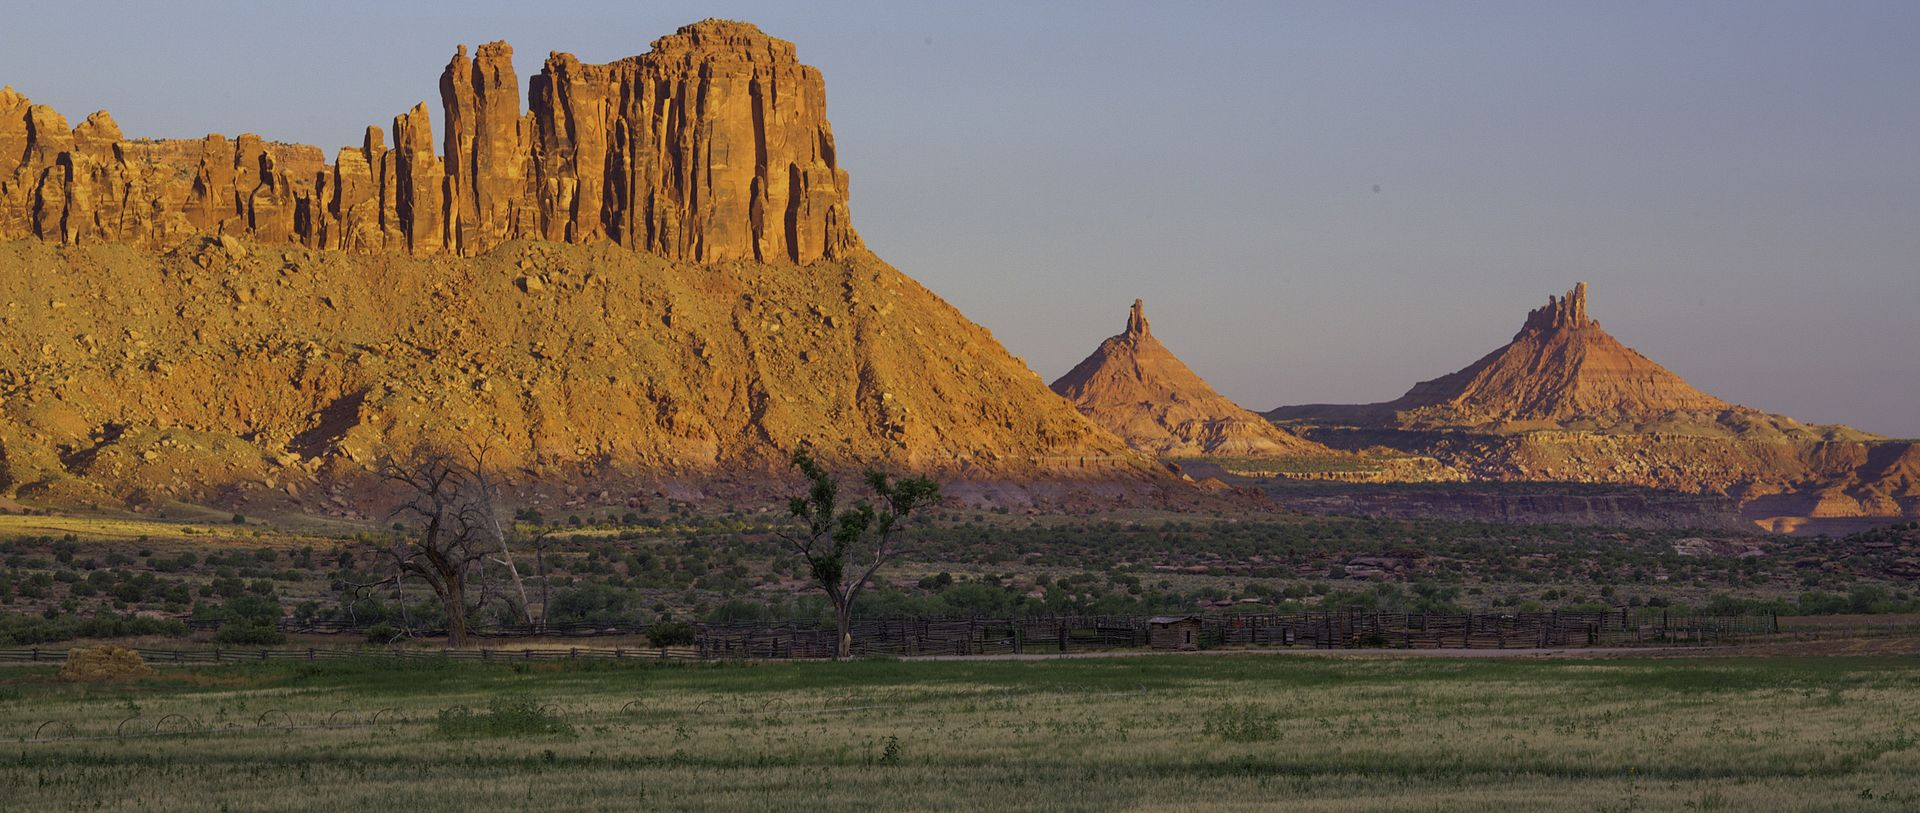 Indian Creek Canyon and the Sixshooter Peaks - US Bureau of Land Management. This picture shows the buttes after which the monument is named. (2016)